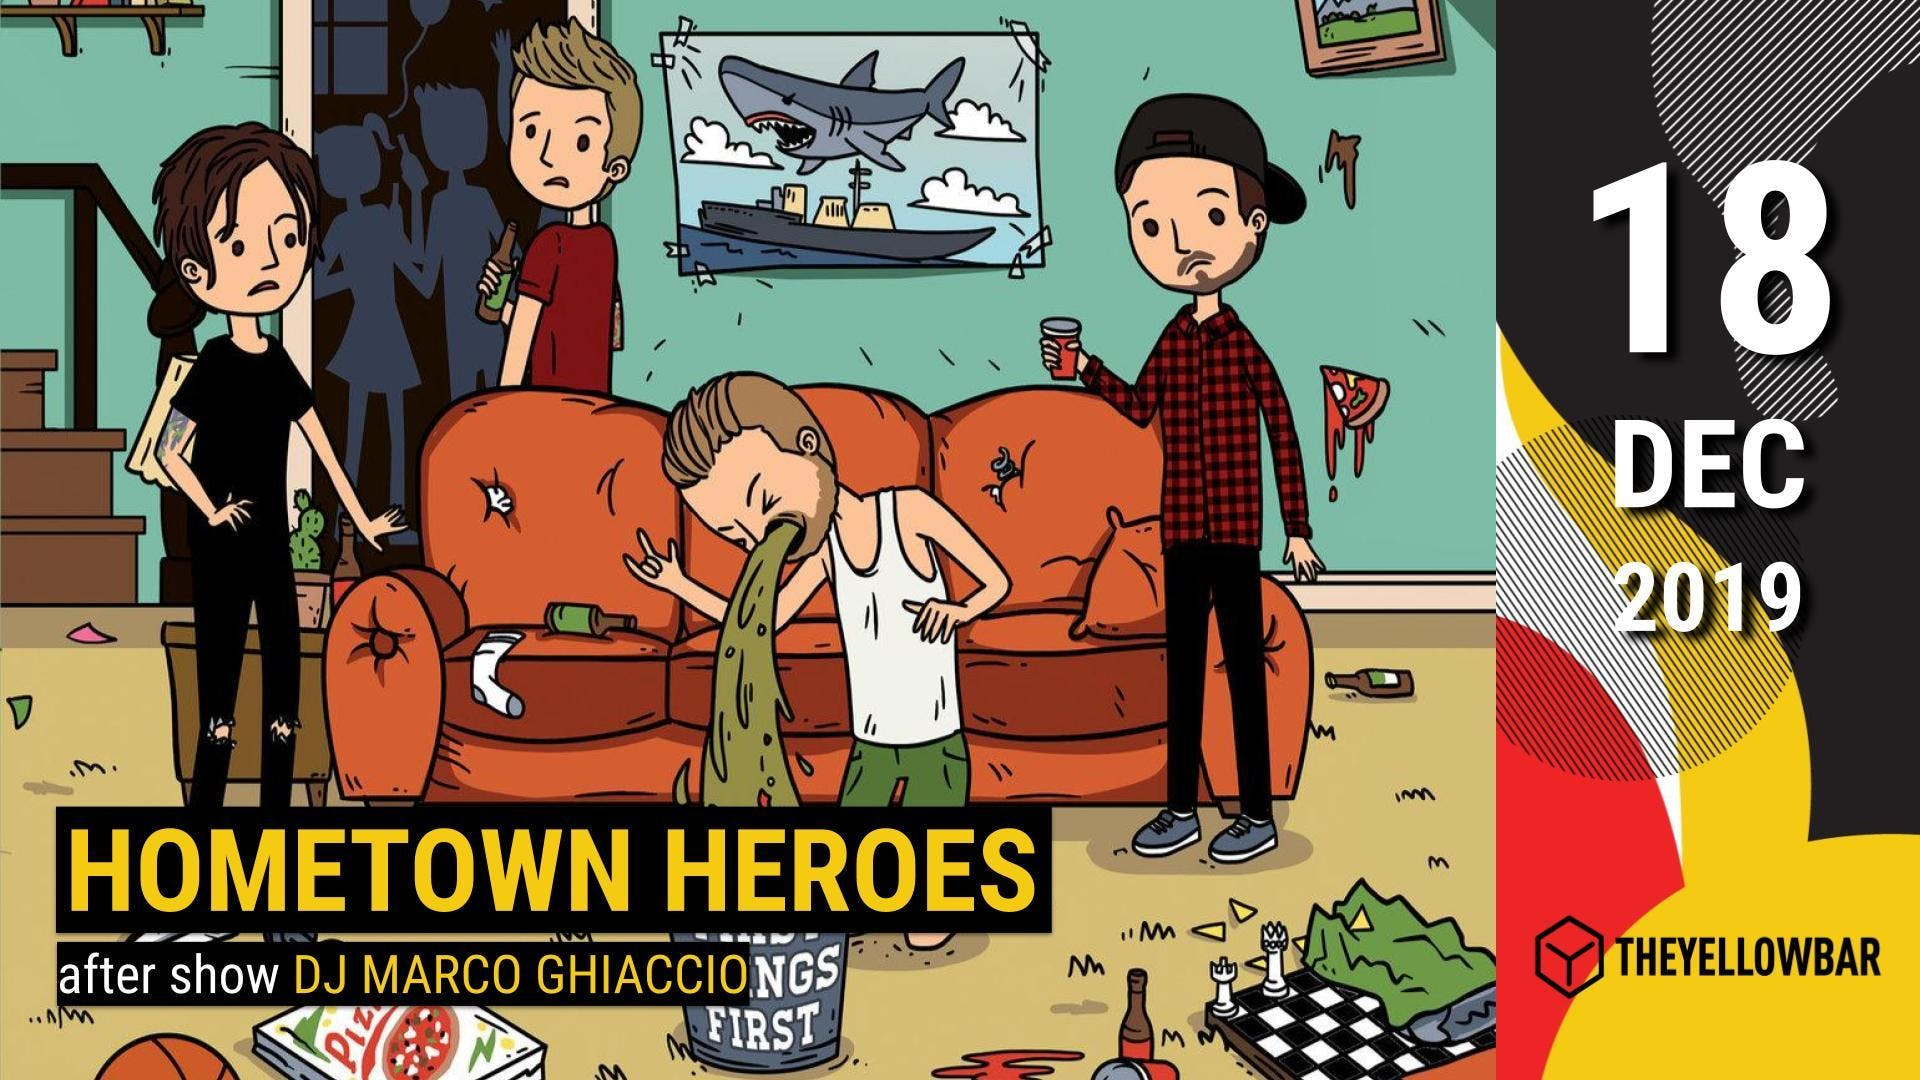 Hometown Heroes - The Yellow Bar